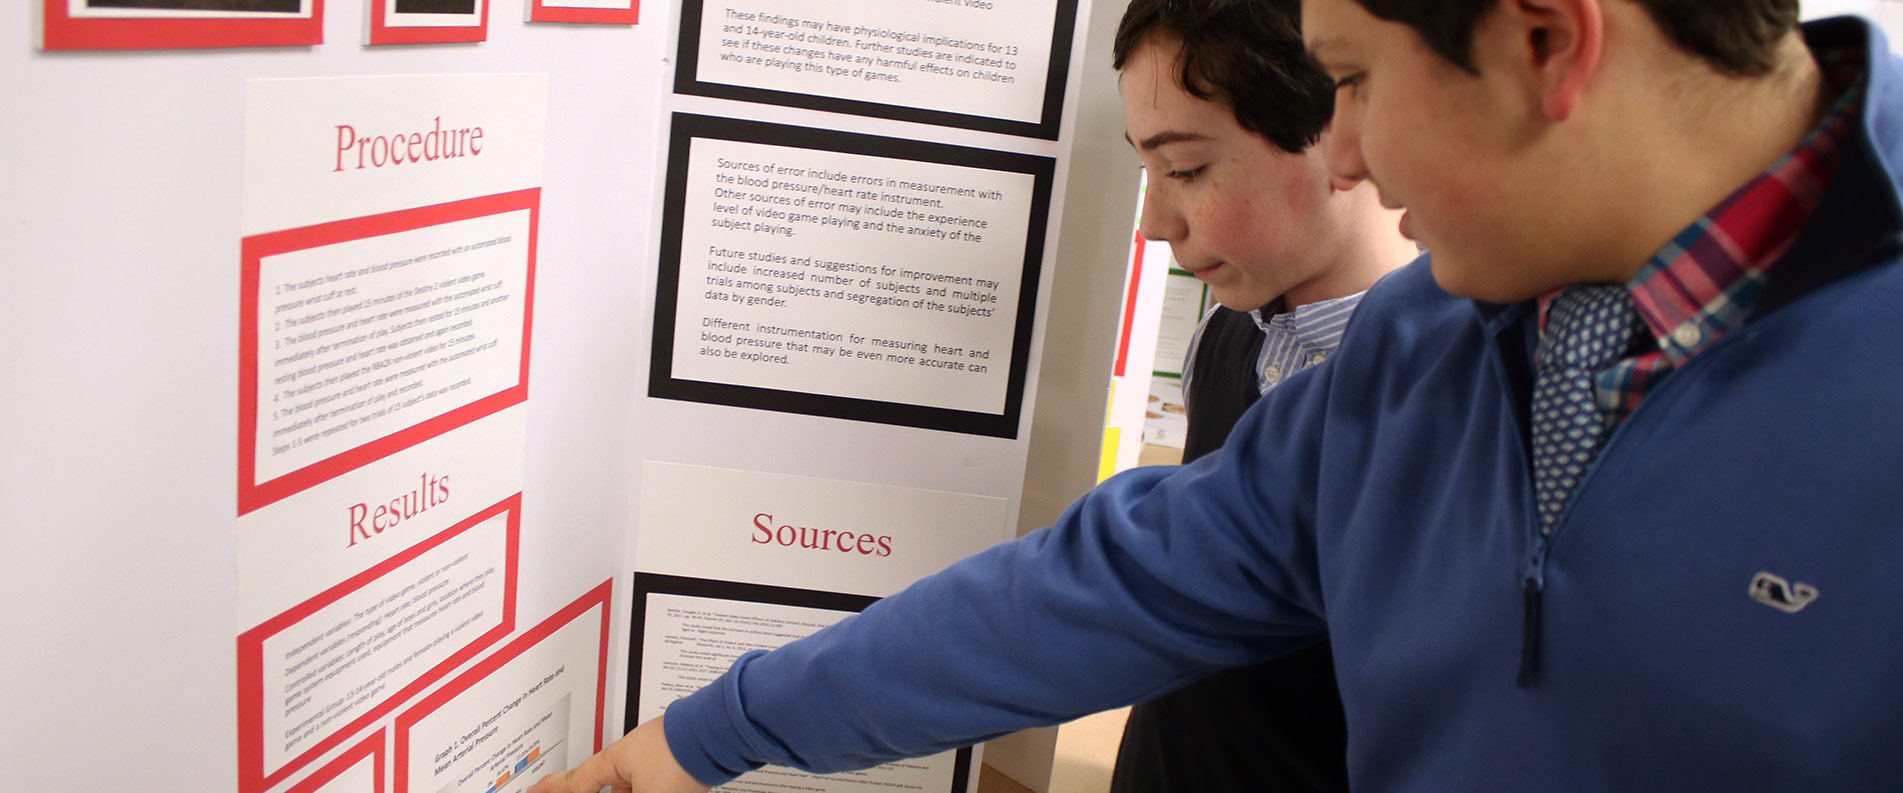 Aquinas Academy middle school students looking at Science Fair presentation board